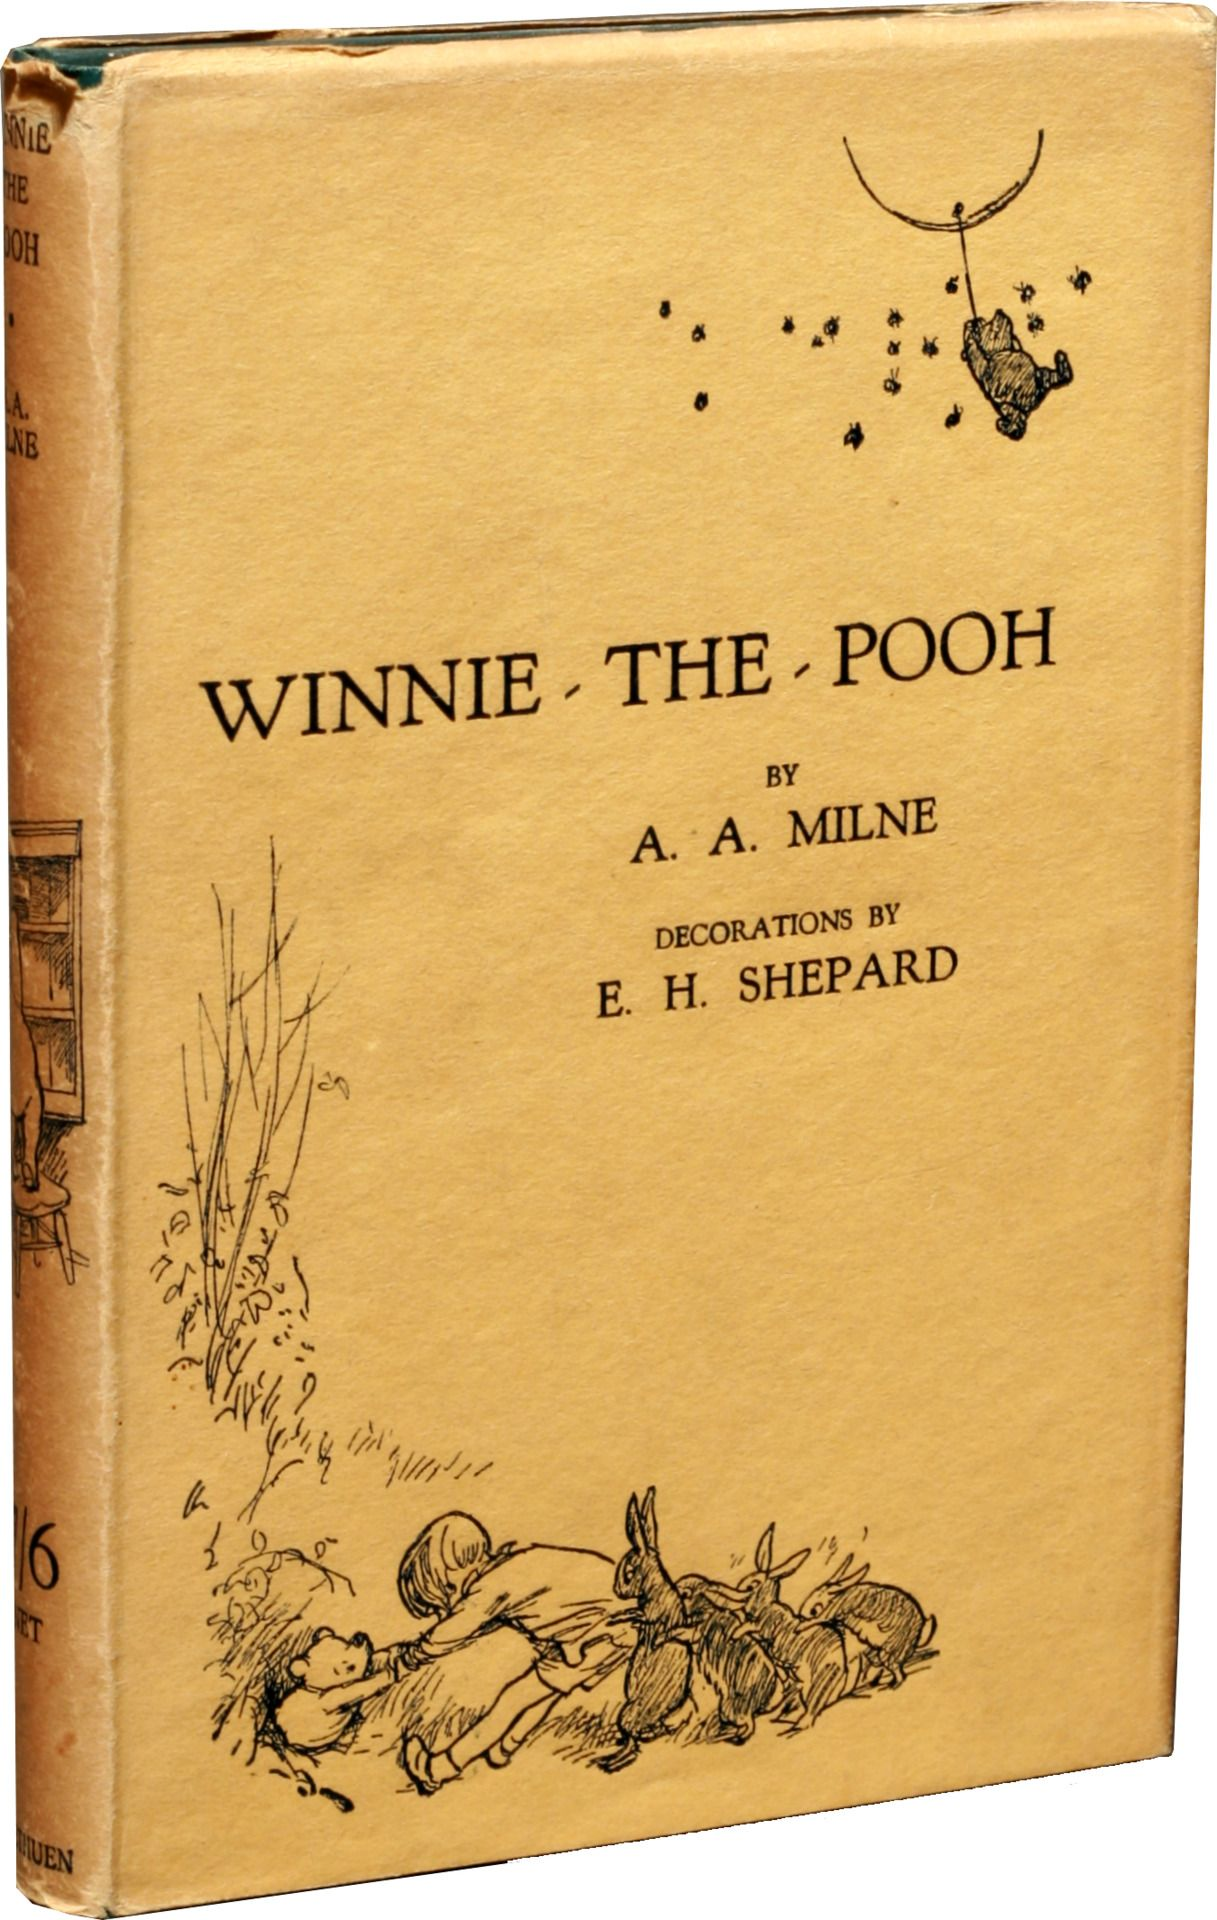 Winnie The Pooh First Edition From 1926